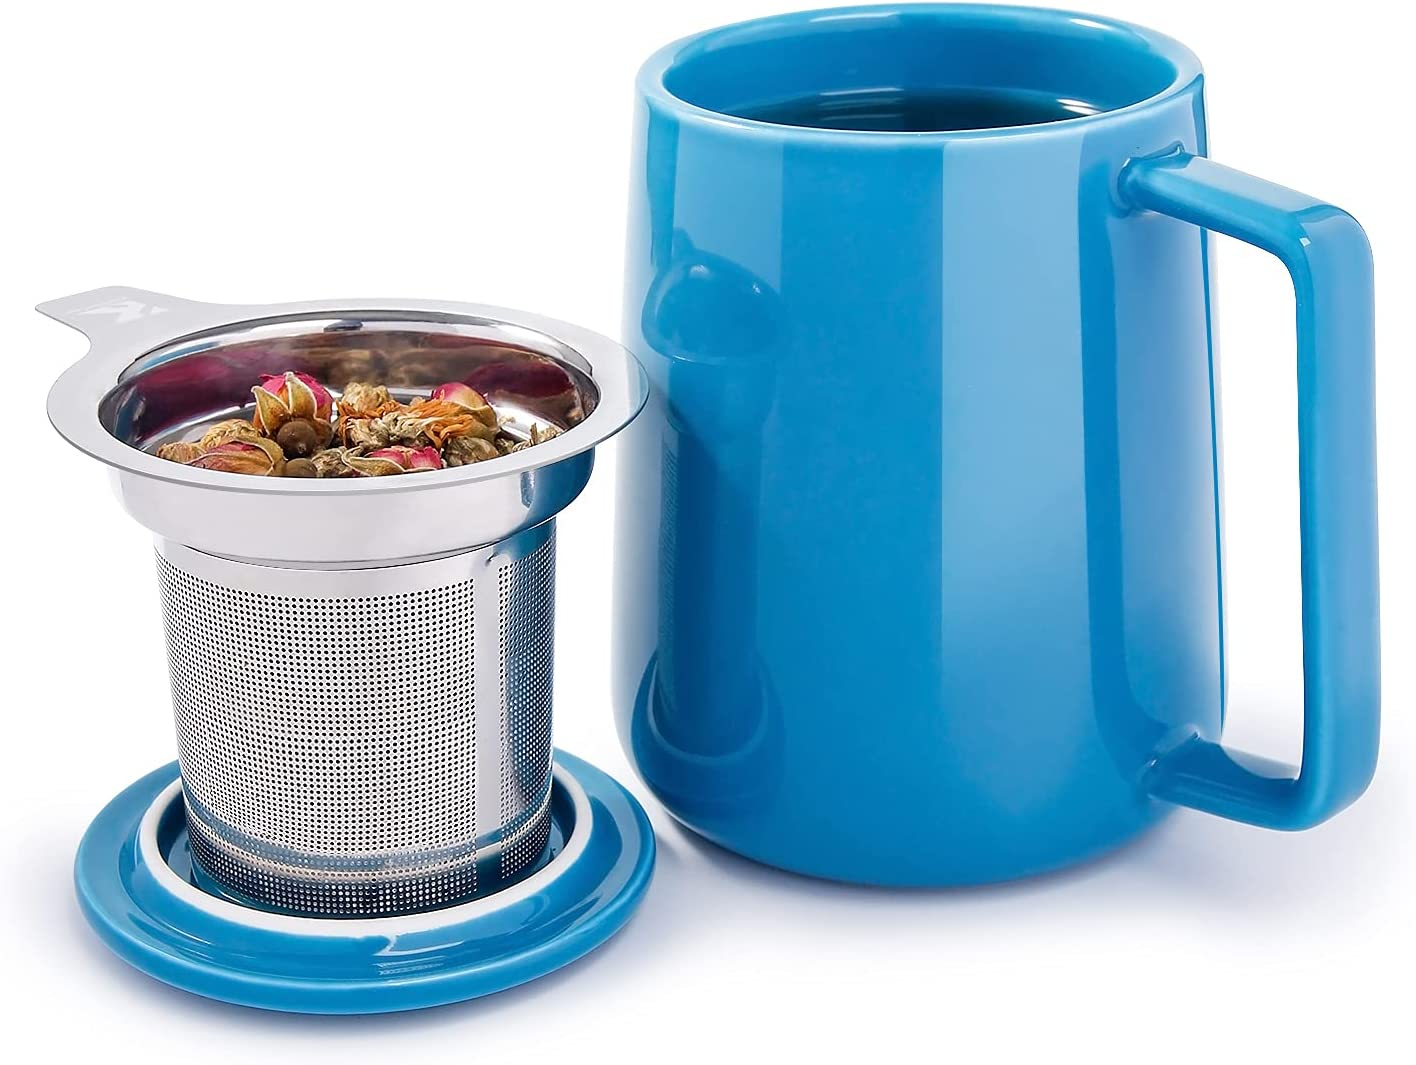 NEW Super beauty product restock quality top KitchenTour Ceramic Tea Mug with Infuser Lid - Capacit Large and